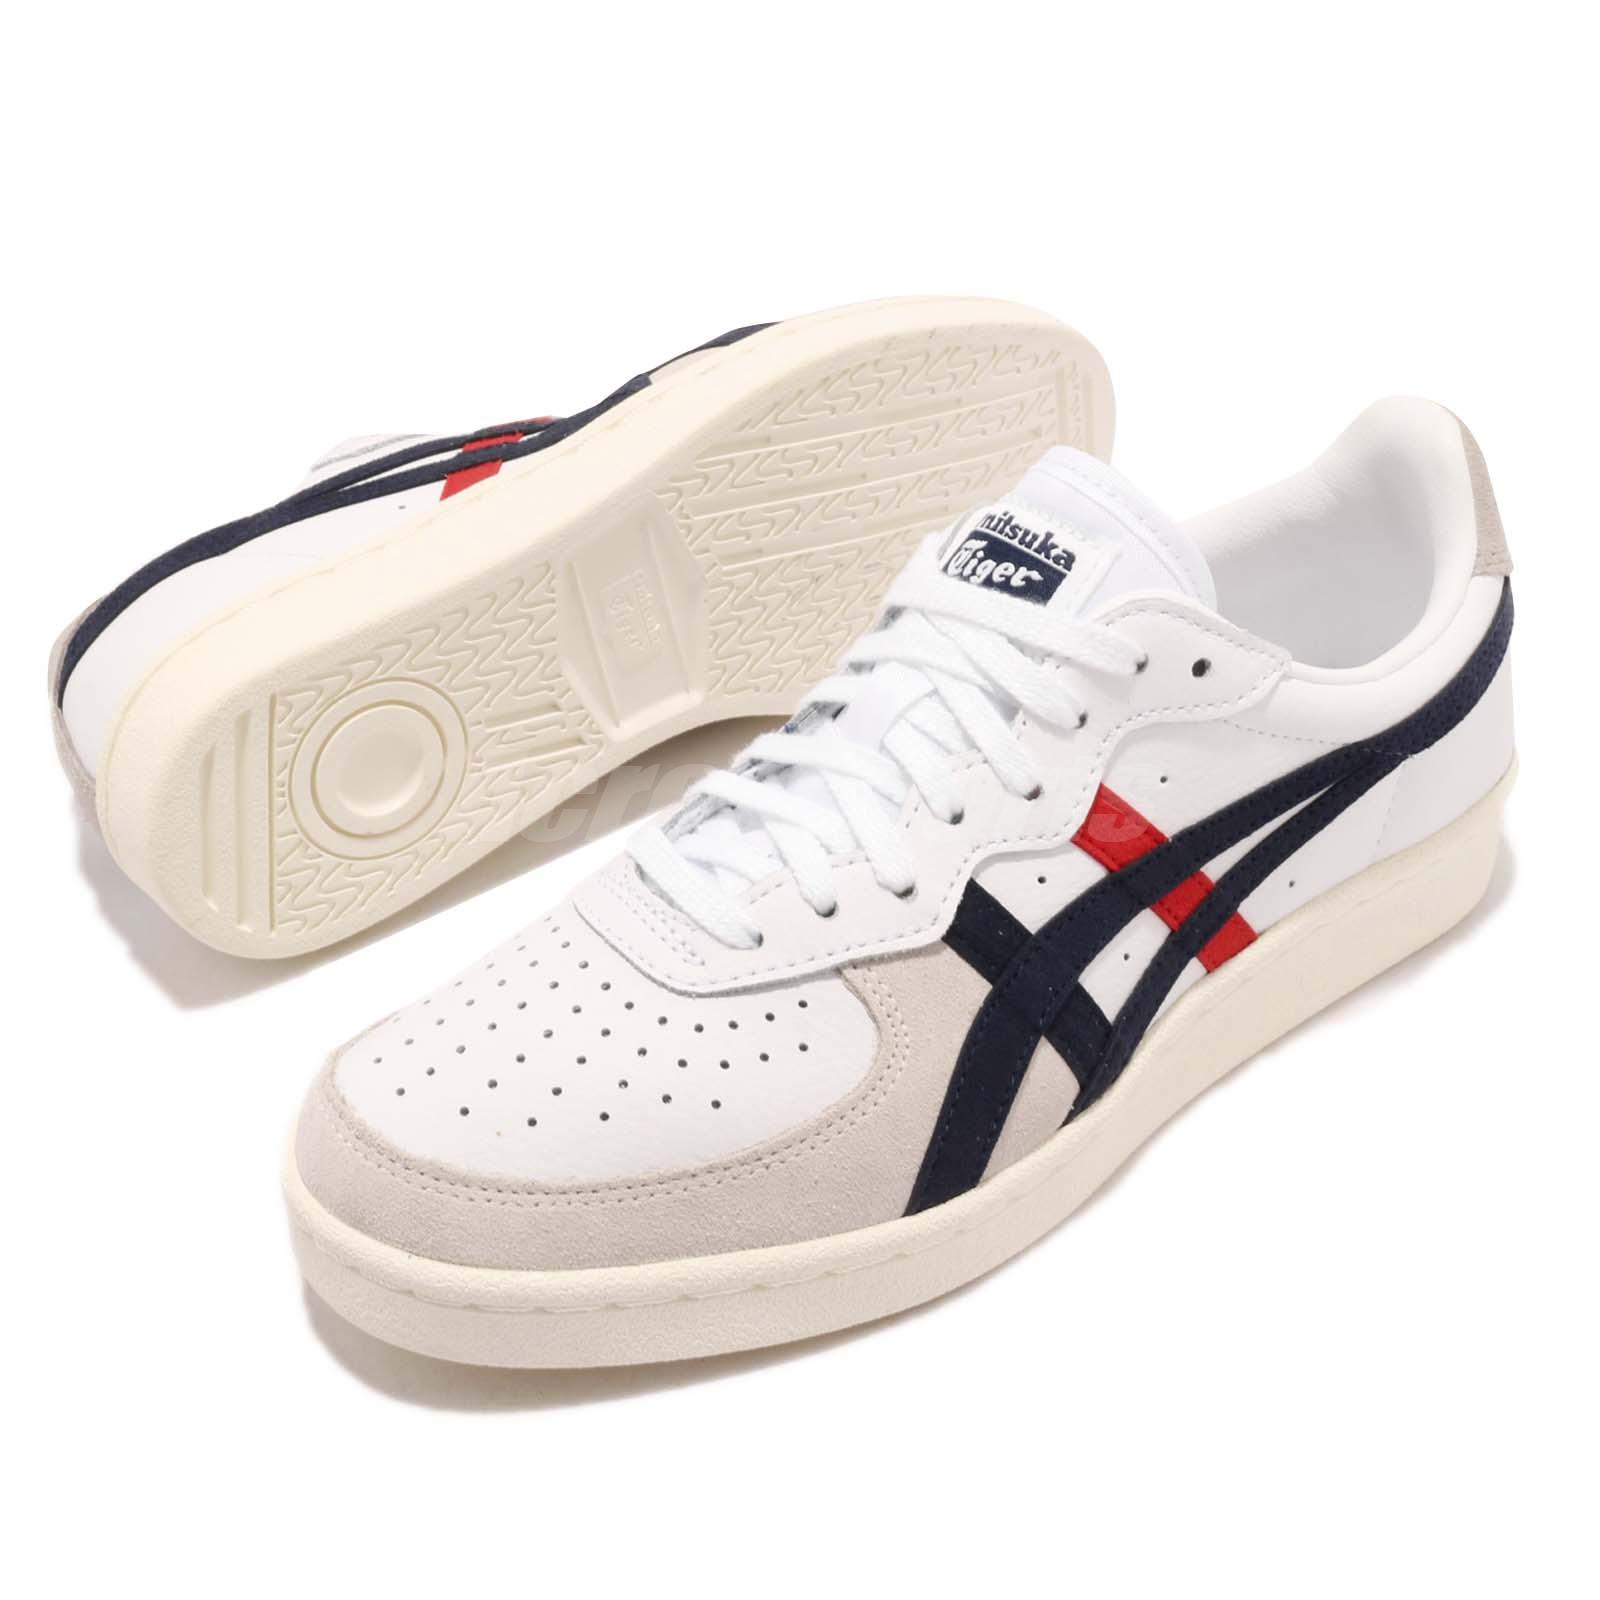 Details about Asics Onitsuka Tiger GSM White Peacoat Men Casual Shoes  Sneakers D5K2-Y100